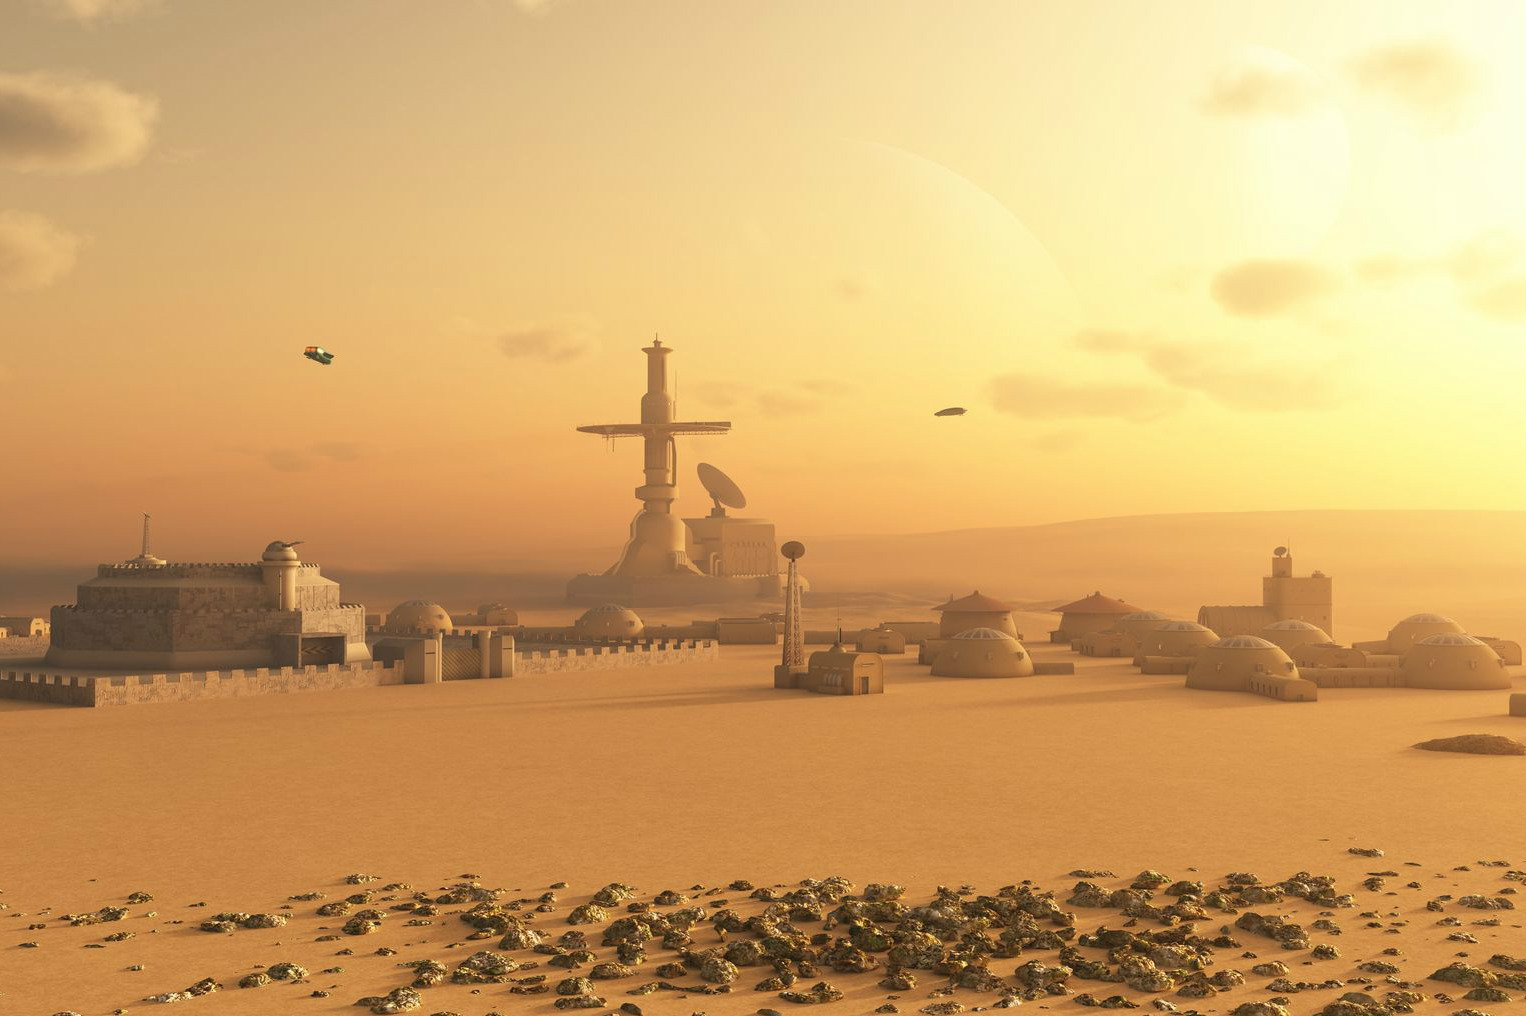 a manned mission to mars A panel of experts think it is possible to send humans on a mission to mars by the 2030s if nasa is consistently funded at pre-sequestration levels.